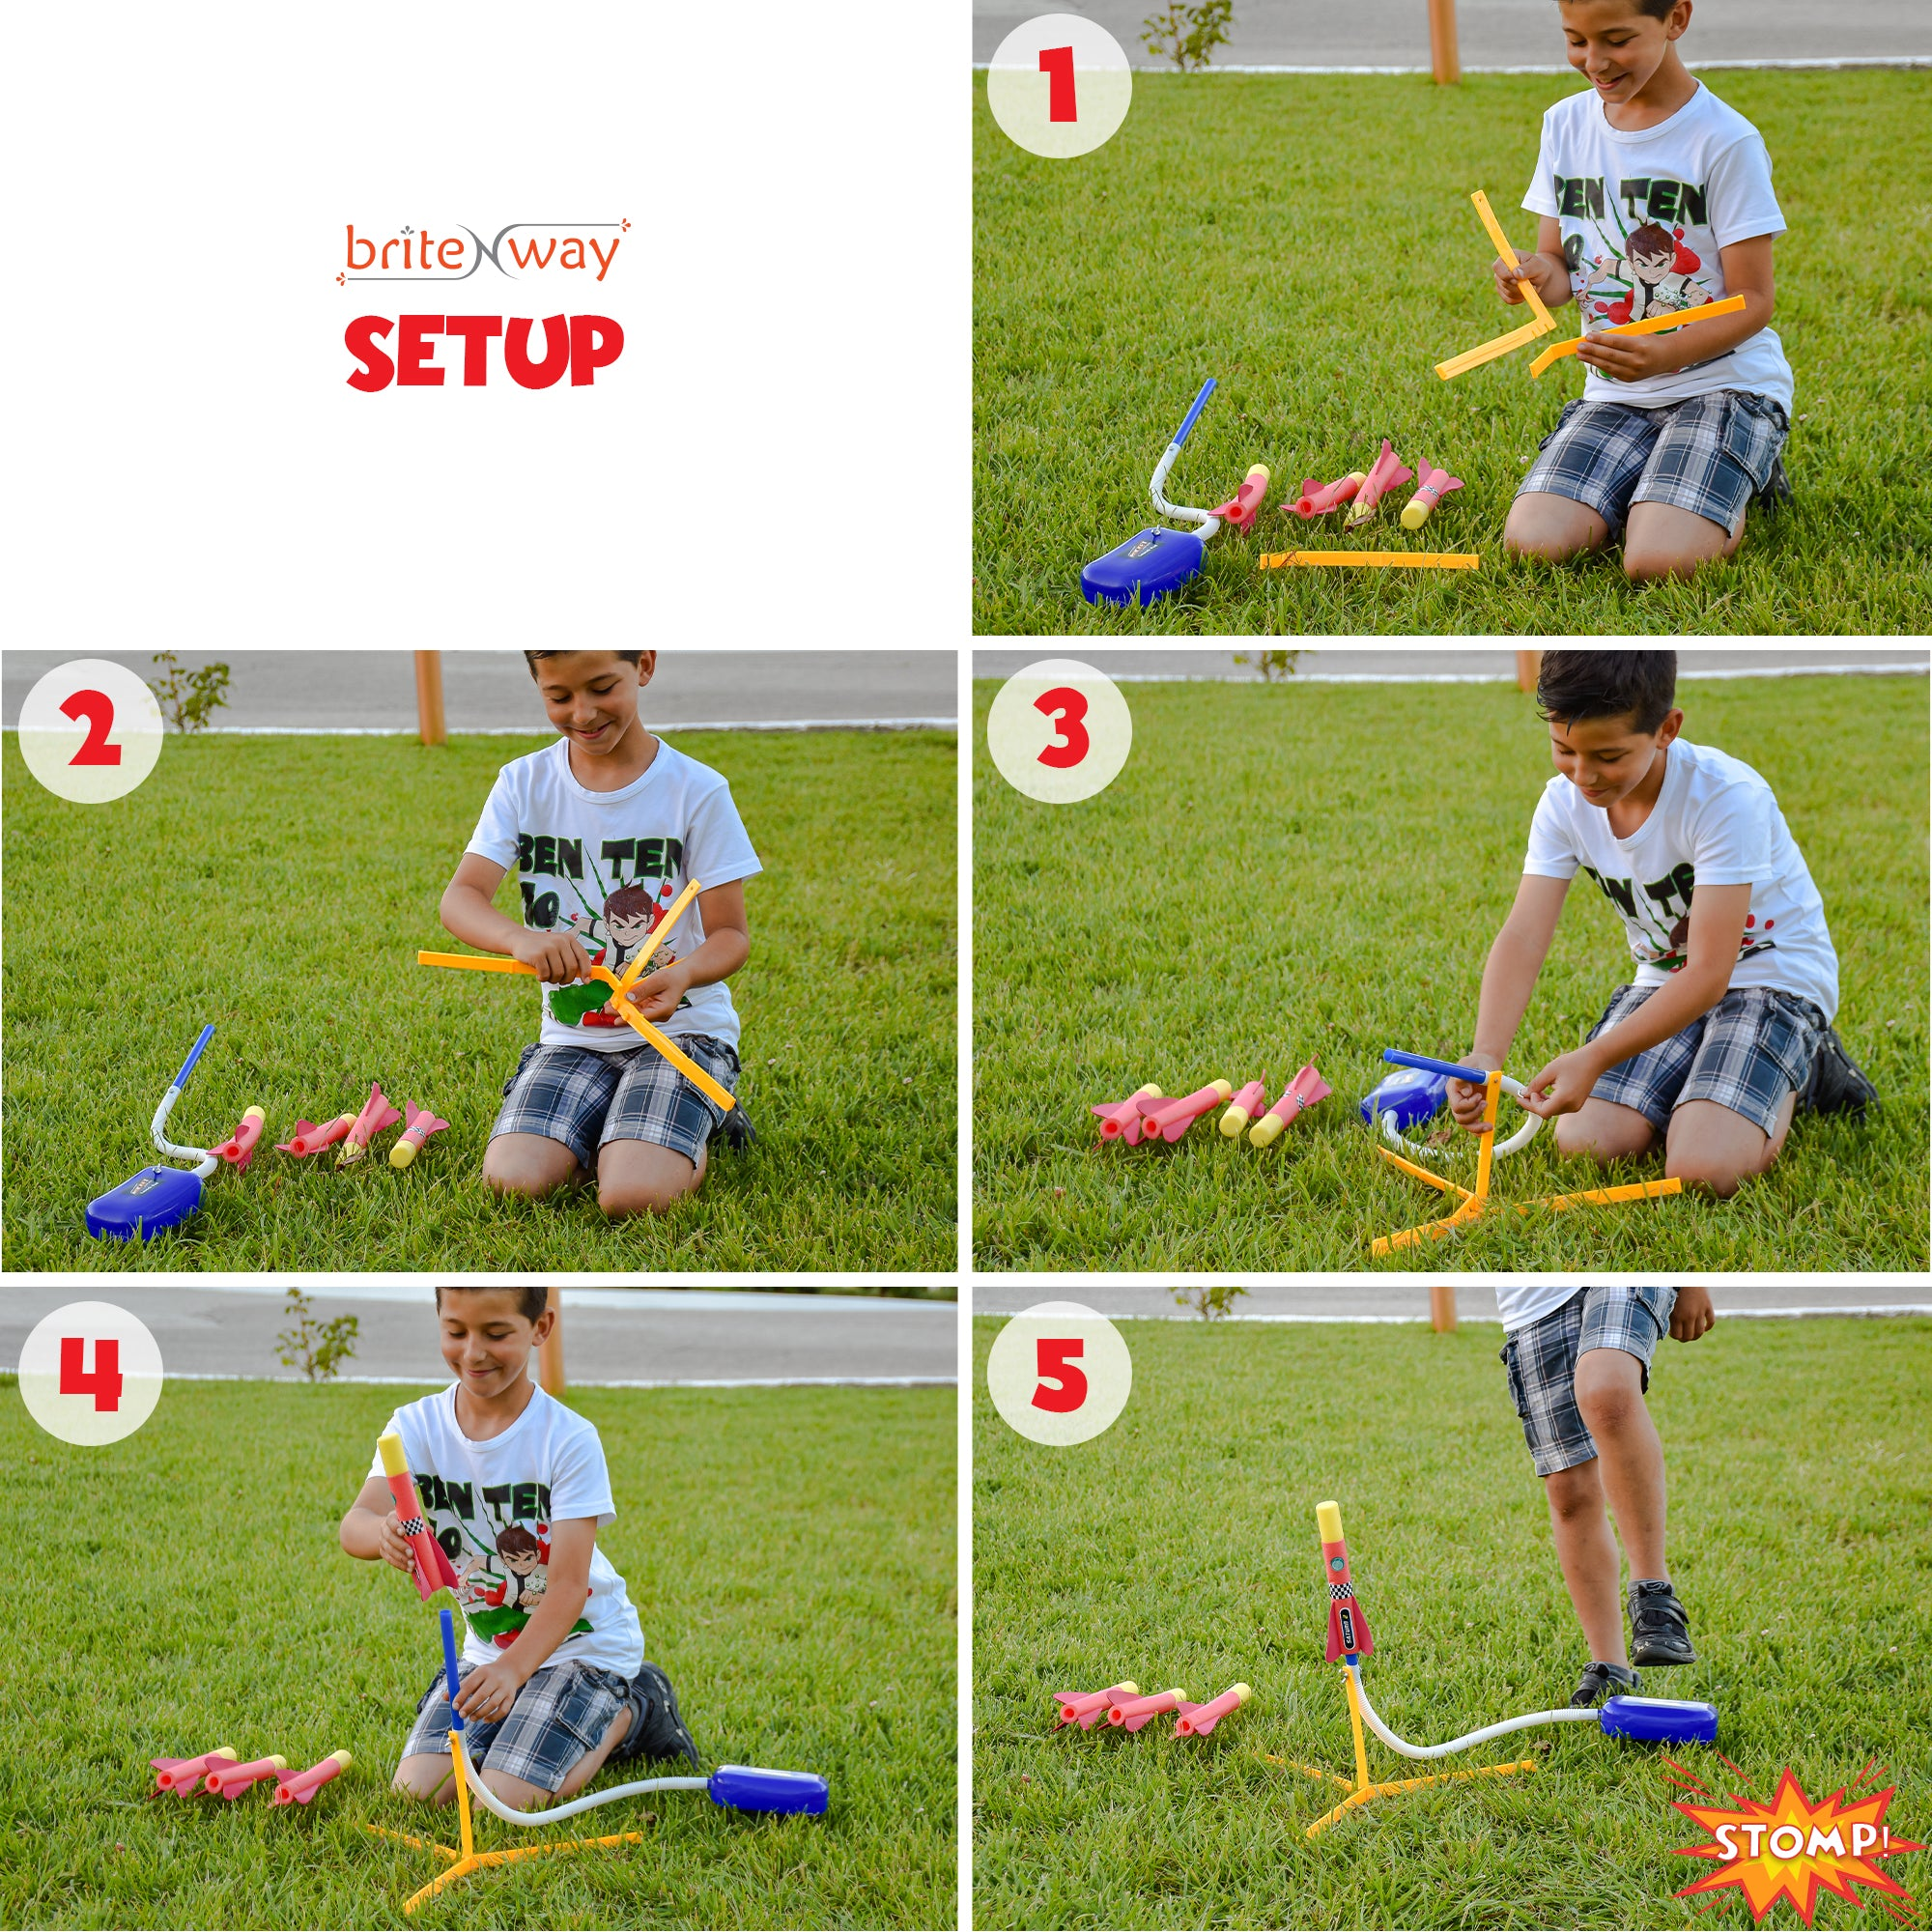 Toy Rocket Launcher for kids – Shoots Up to 100 Feet – 4 Colorful Foam Rockets and Sturdy Launcher Stand With Foot Launch Pad - Super Fun Outdoor Toy for Kids